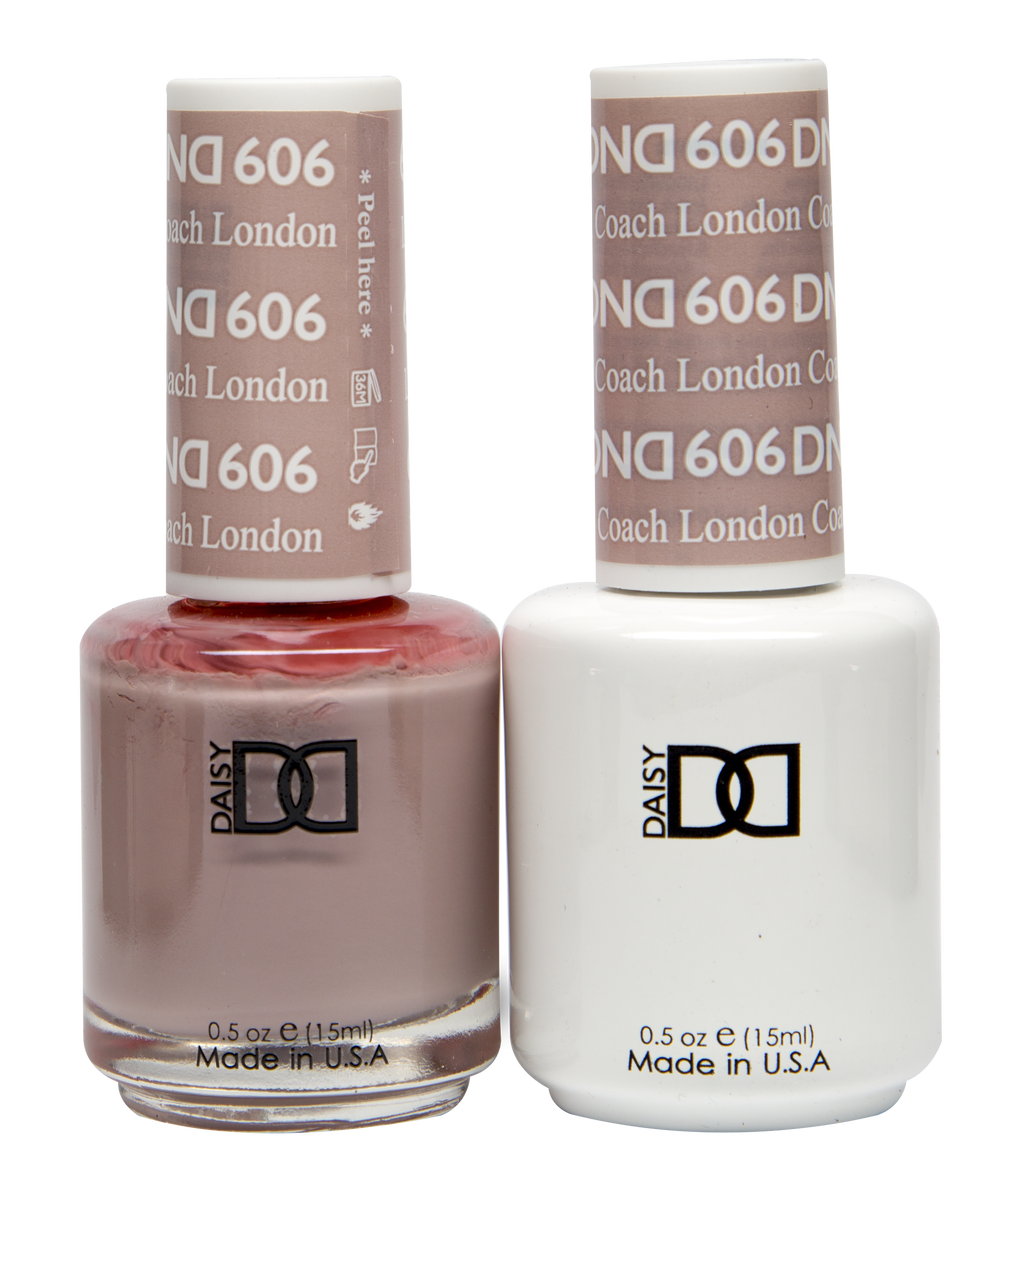 Dnd Soak Off Gel Polish Duo Diva Collection London Coach 606 Max Beauty Source